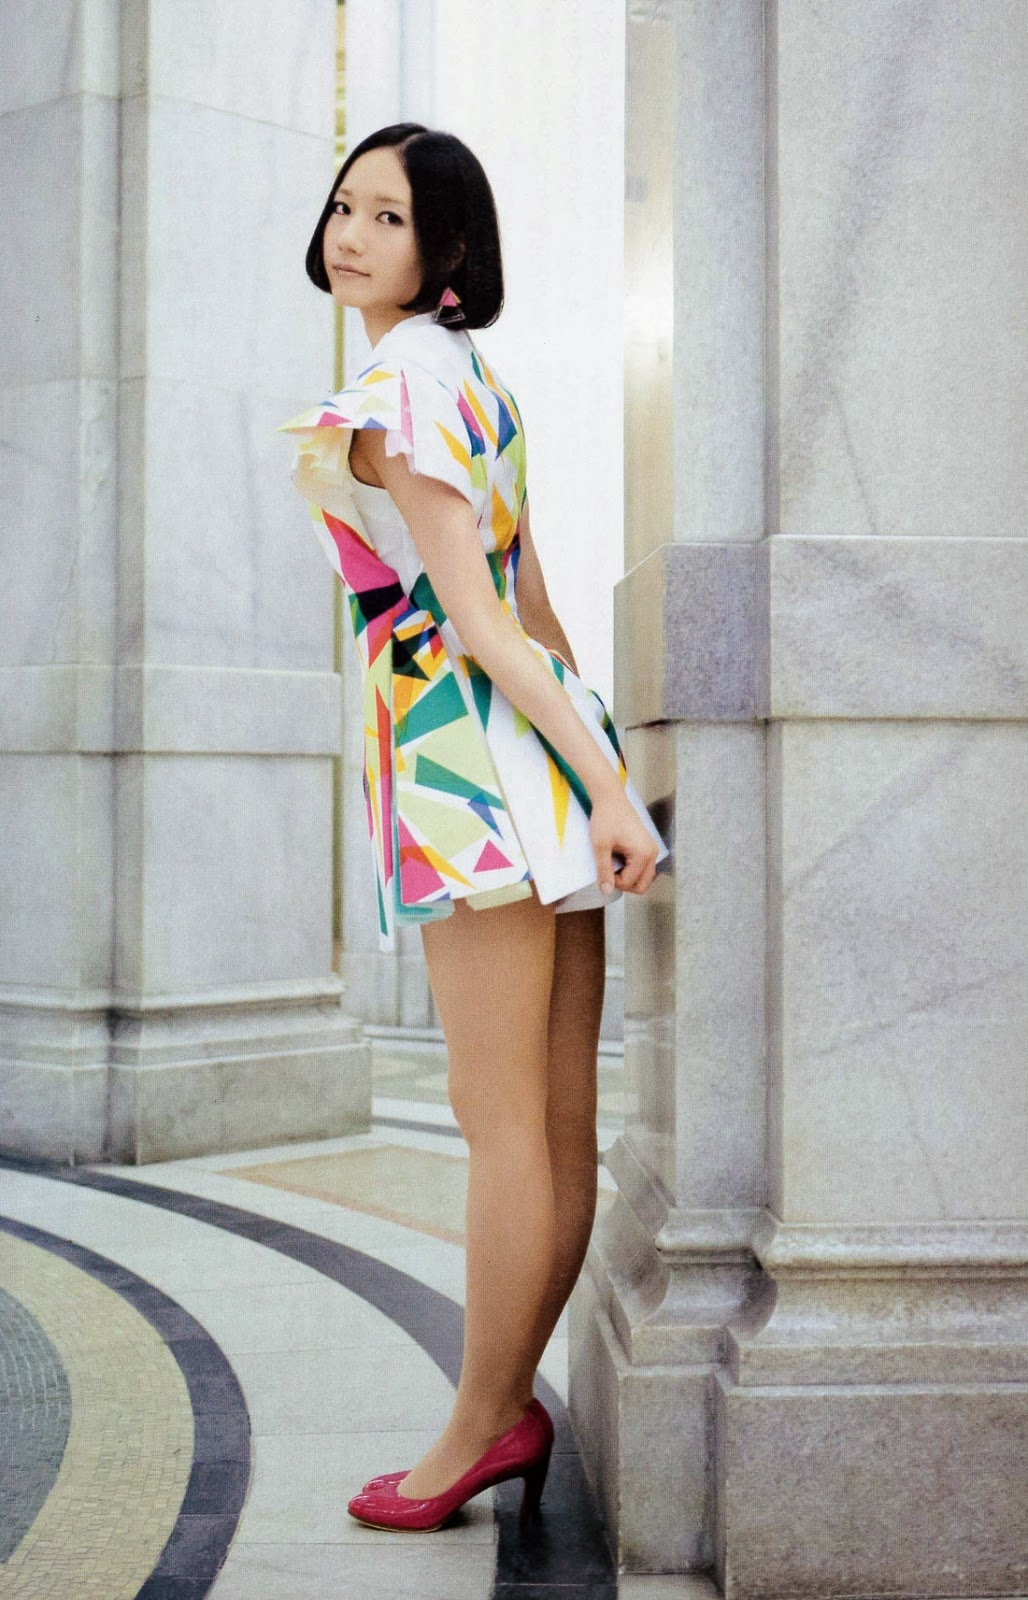 Nocchi AndroidiPhone Wallpaper 33563 Asiachan KPOP